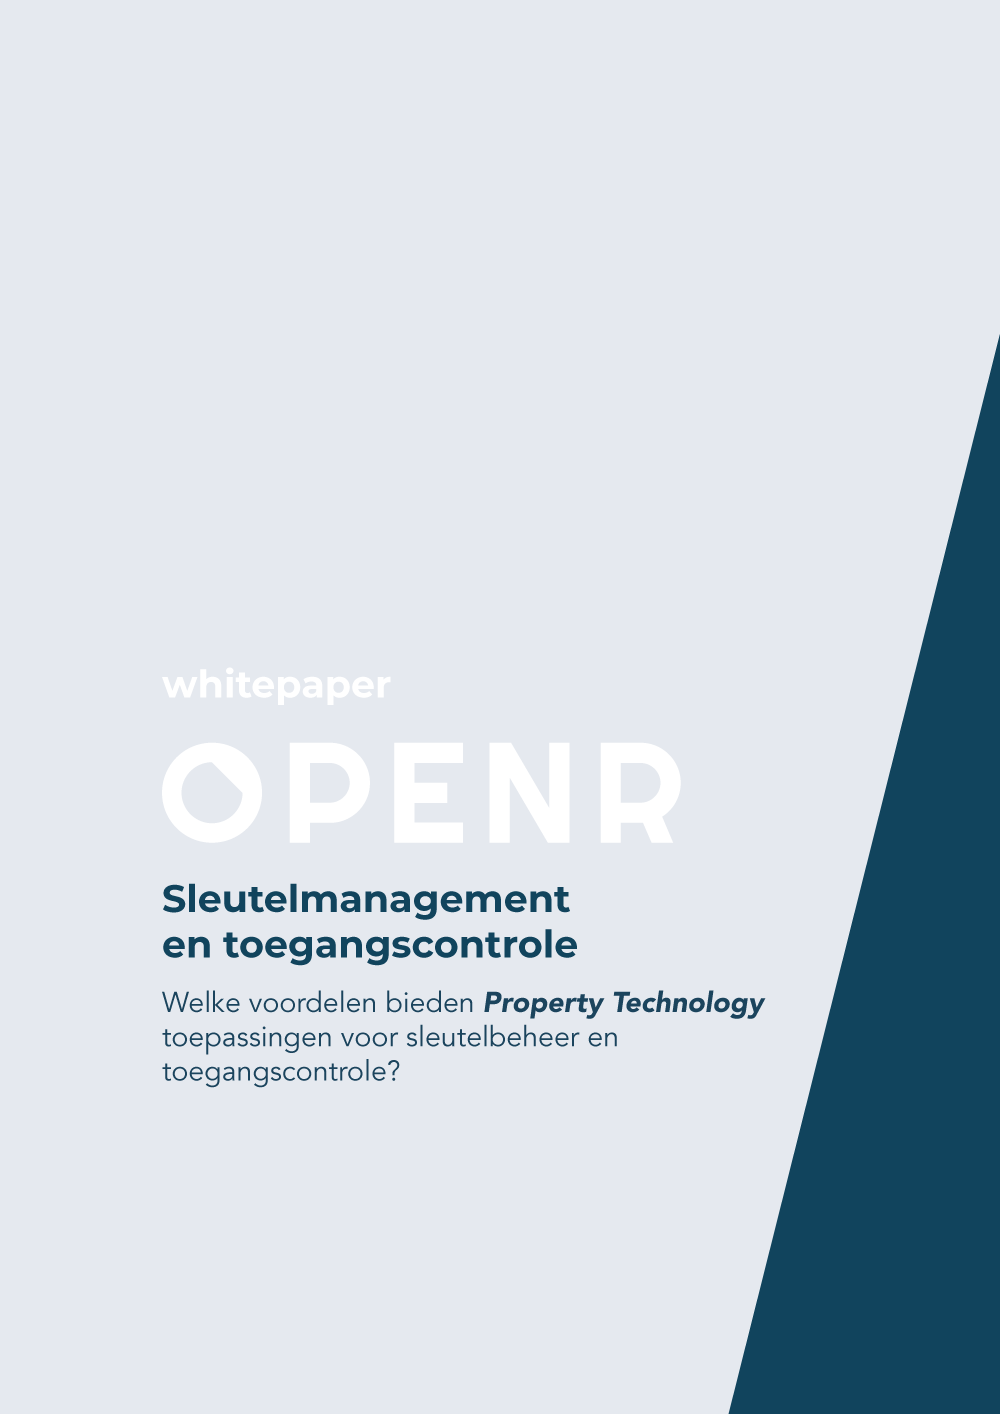 Openr-Whitepaper.png